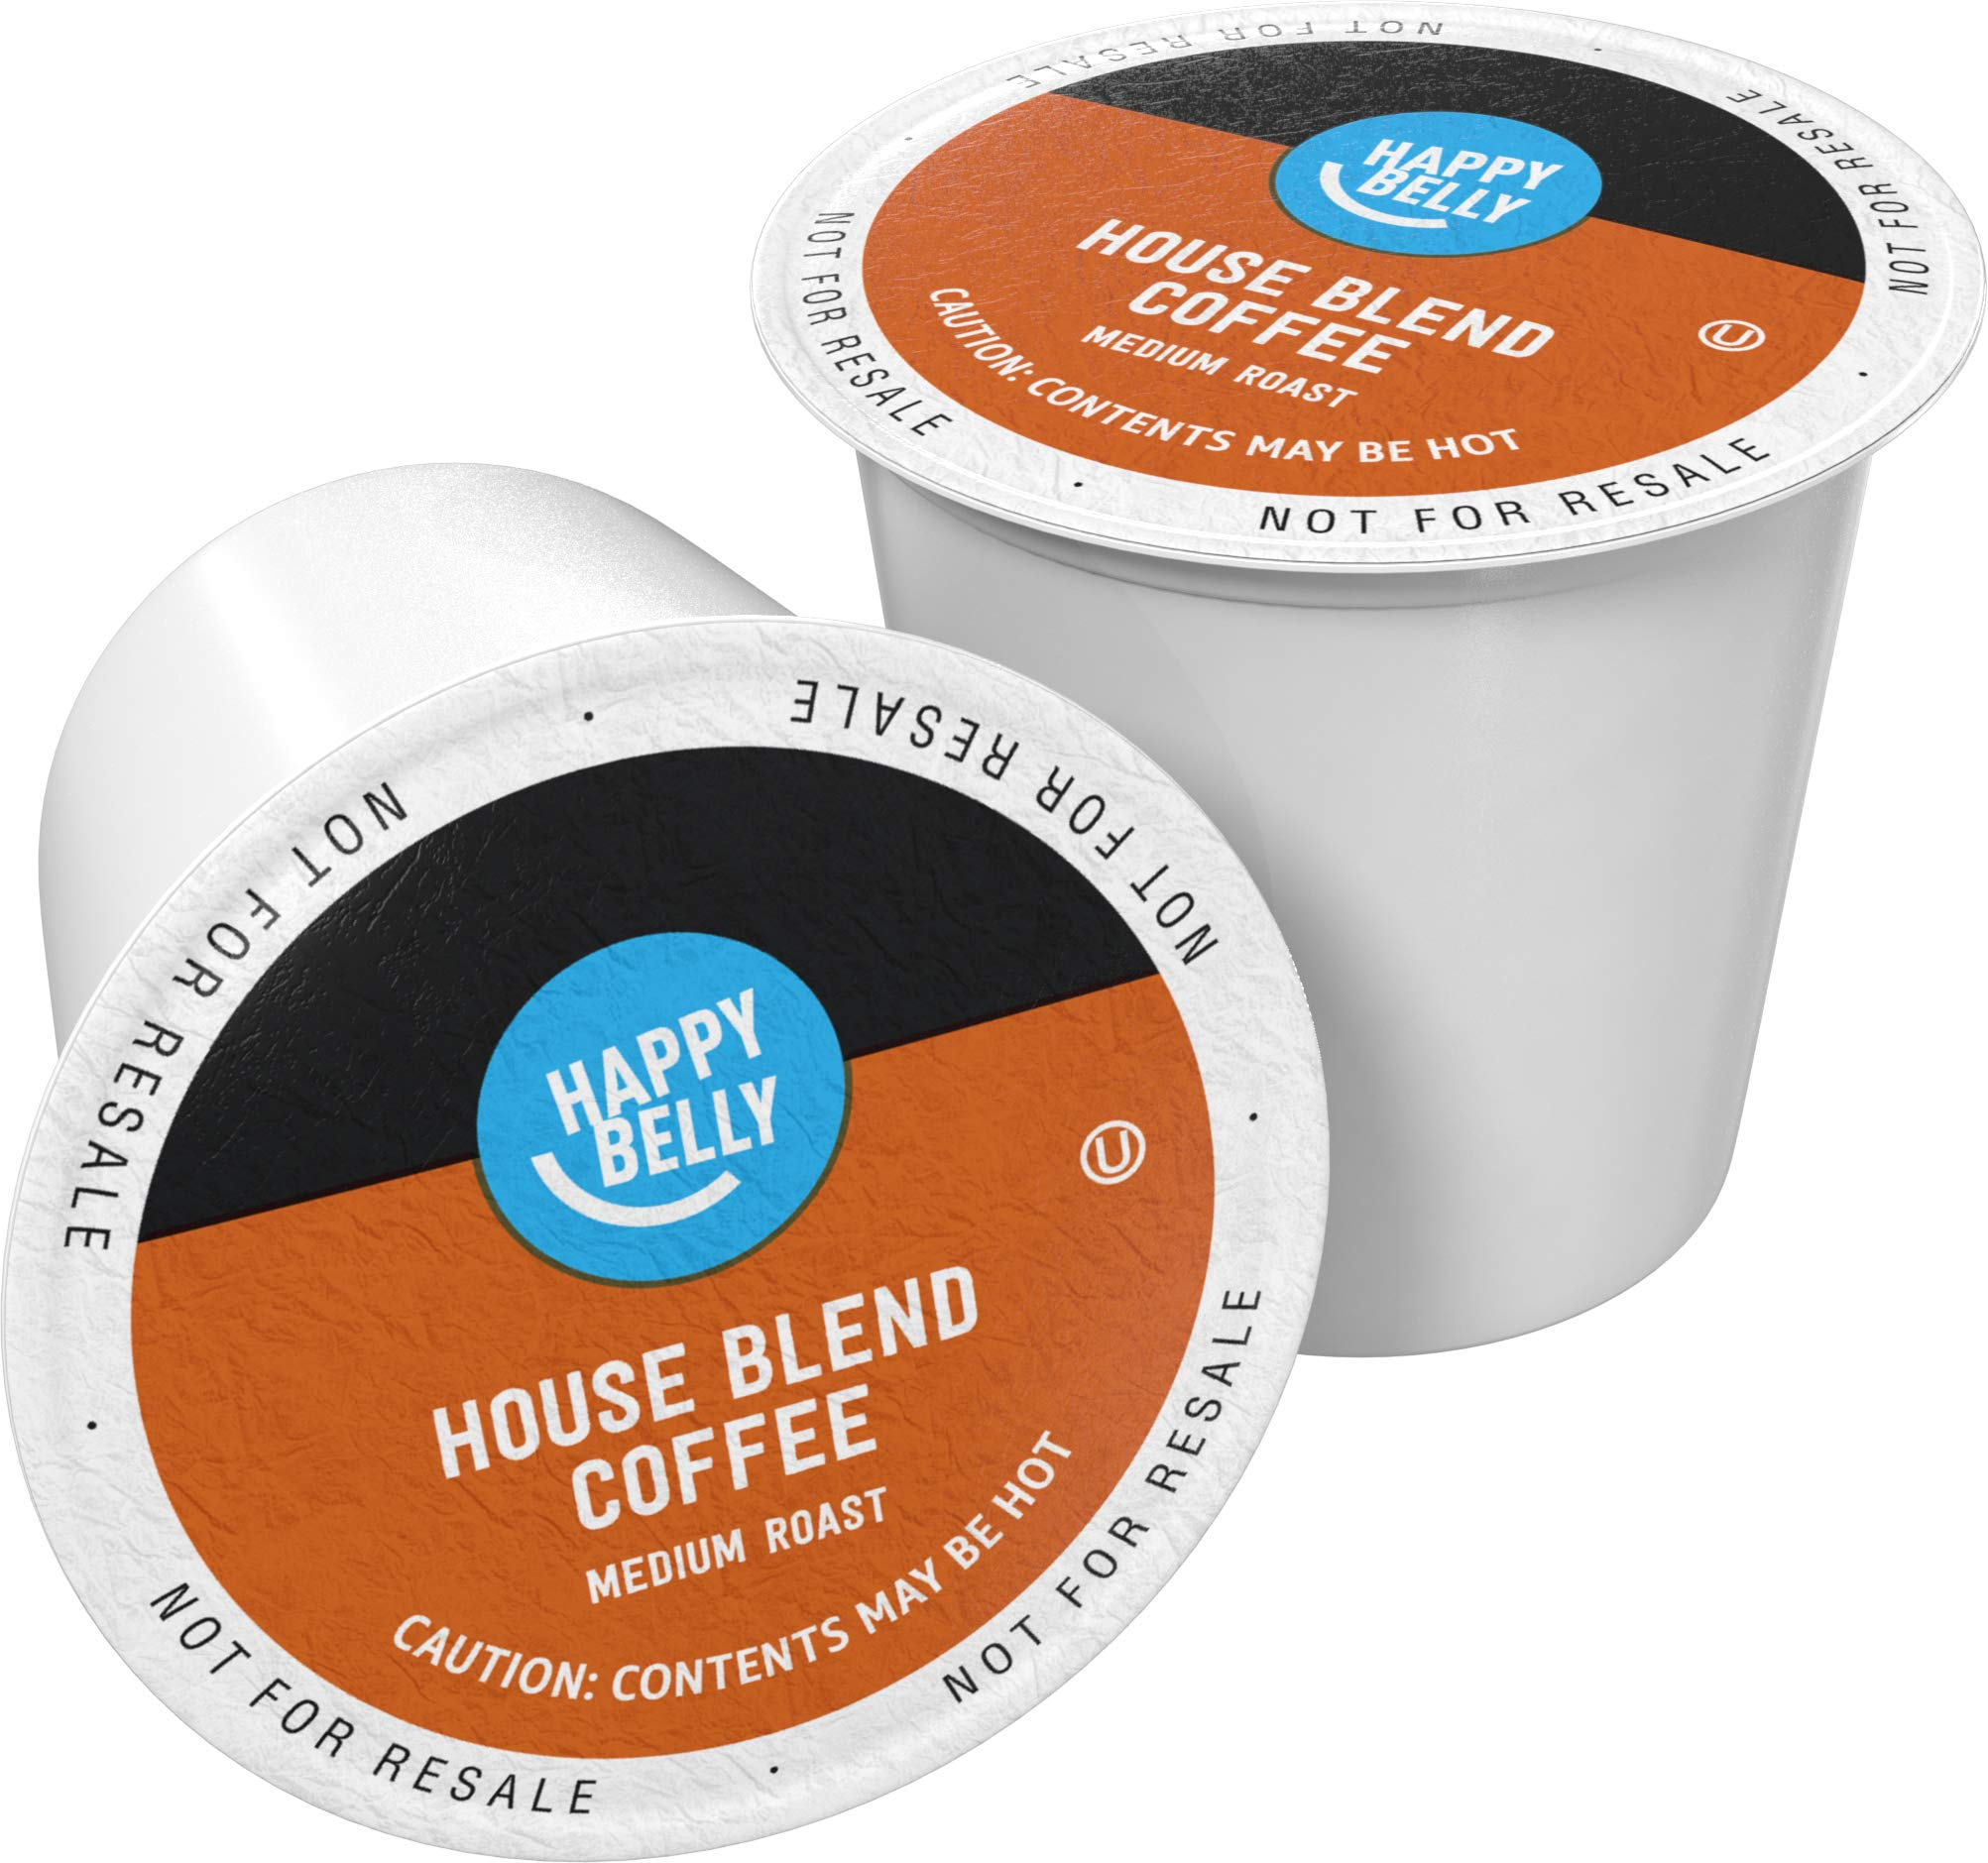 Amazon Brand - 100 Ct. Happy Belly Medium-Dark Roast Coffee Pods, House Blend, Compatible with Keurig 2.0 K-Cup Brewers